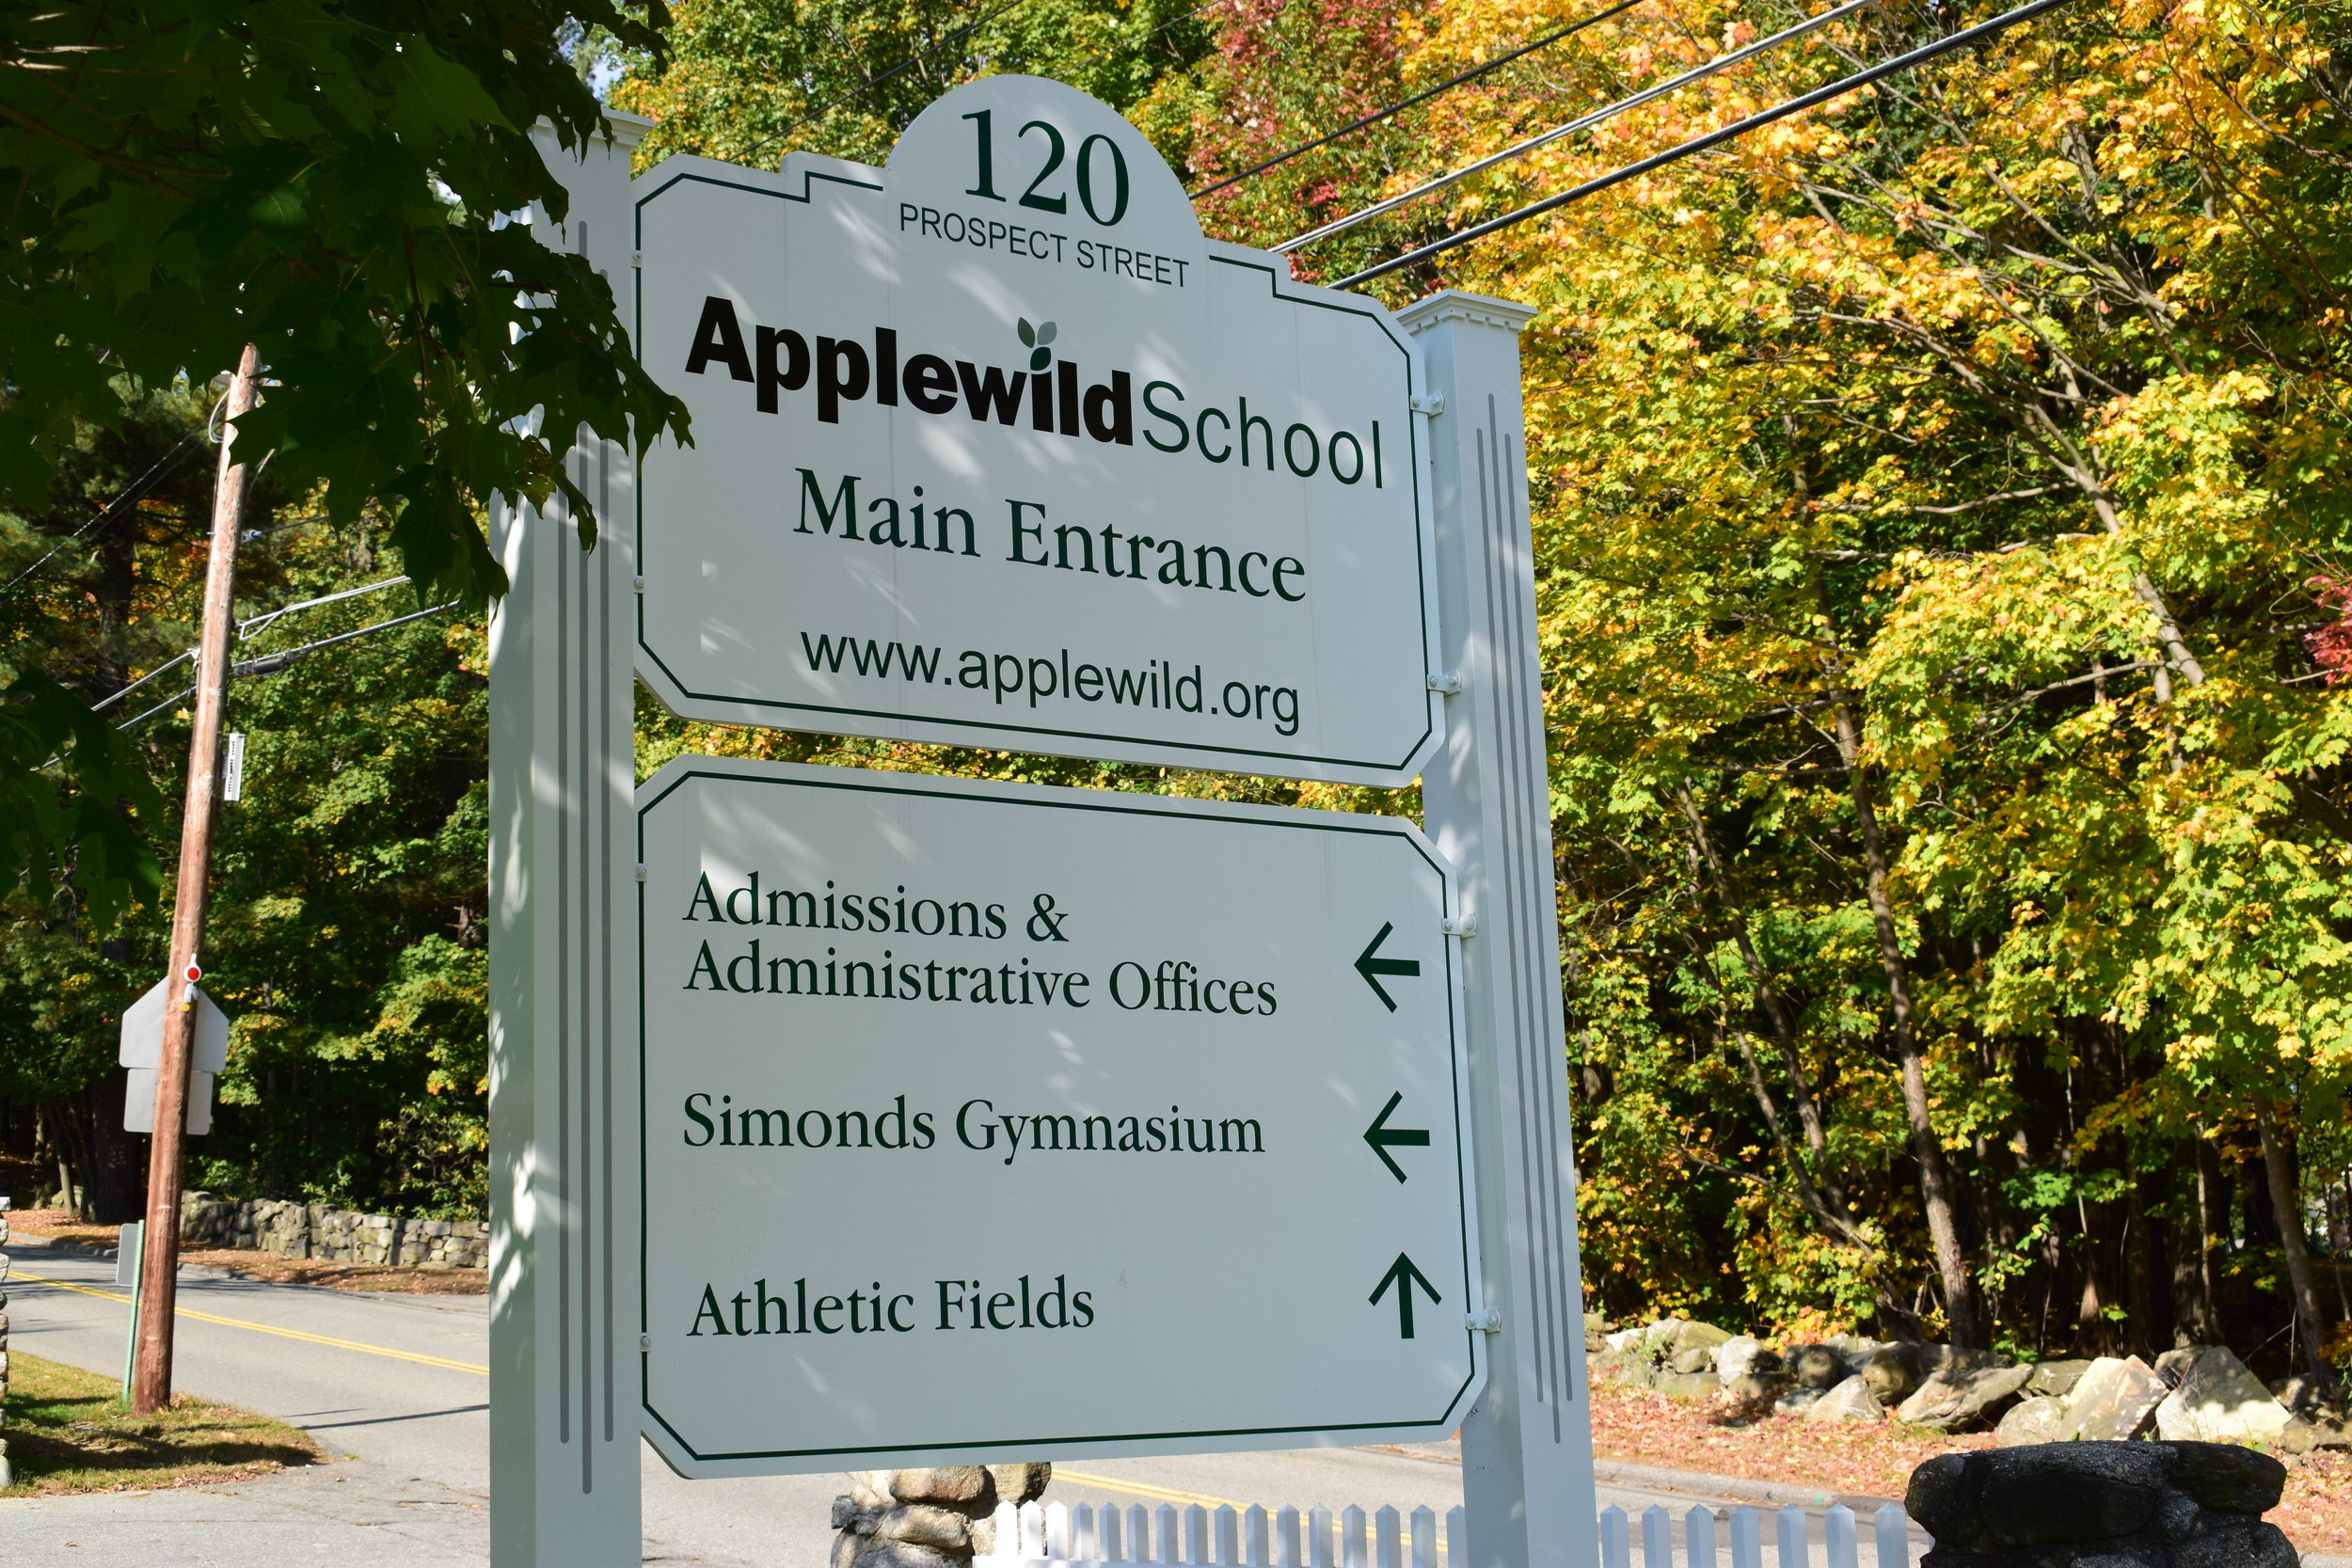 Applewild School Main Entrance Sign